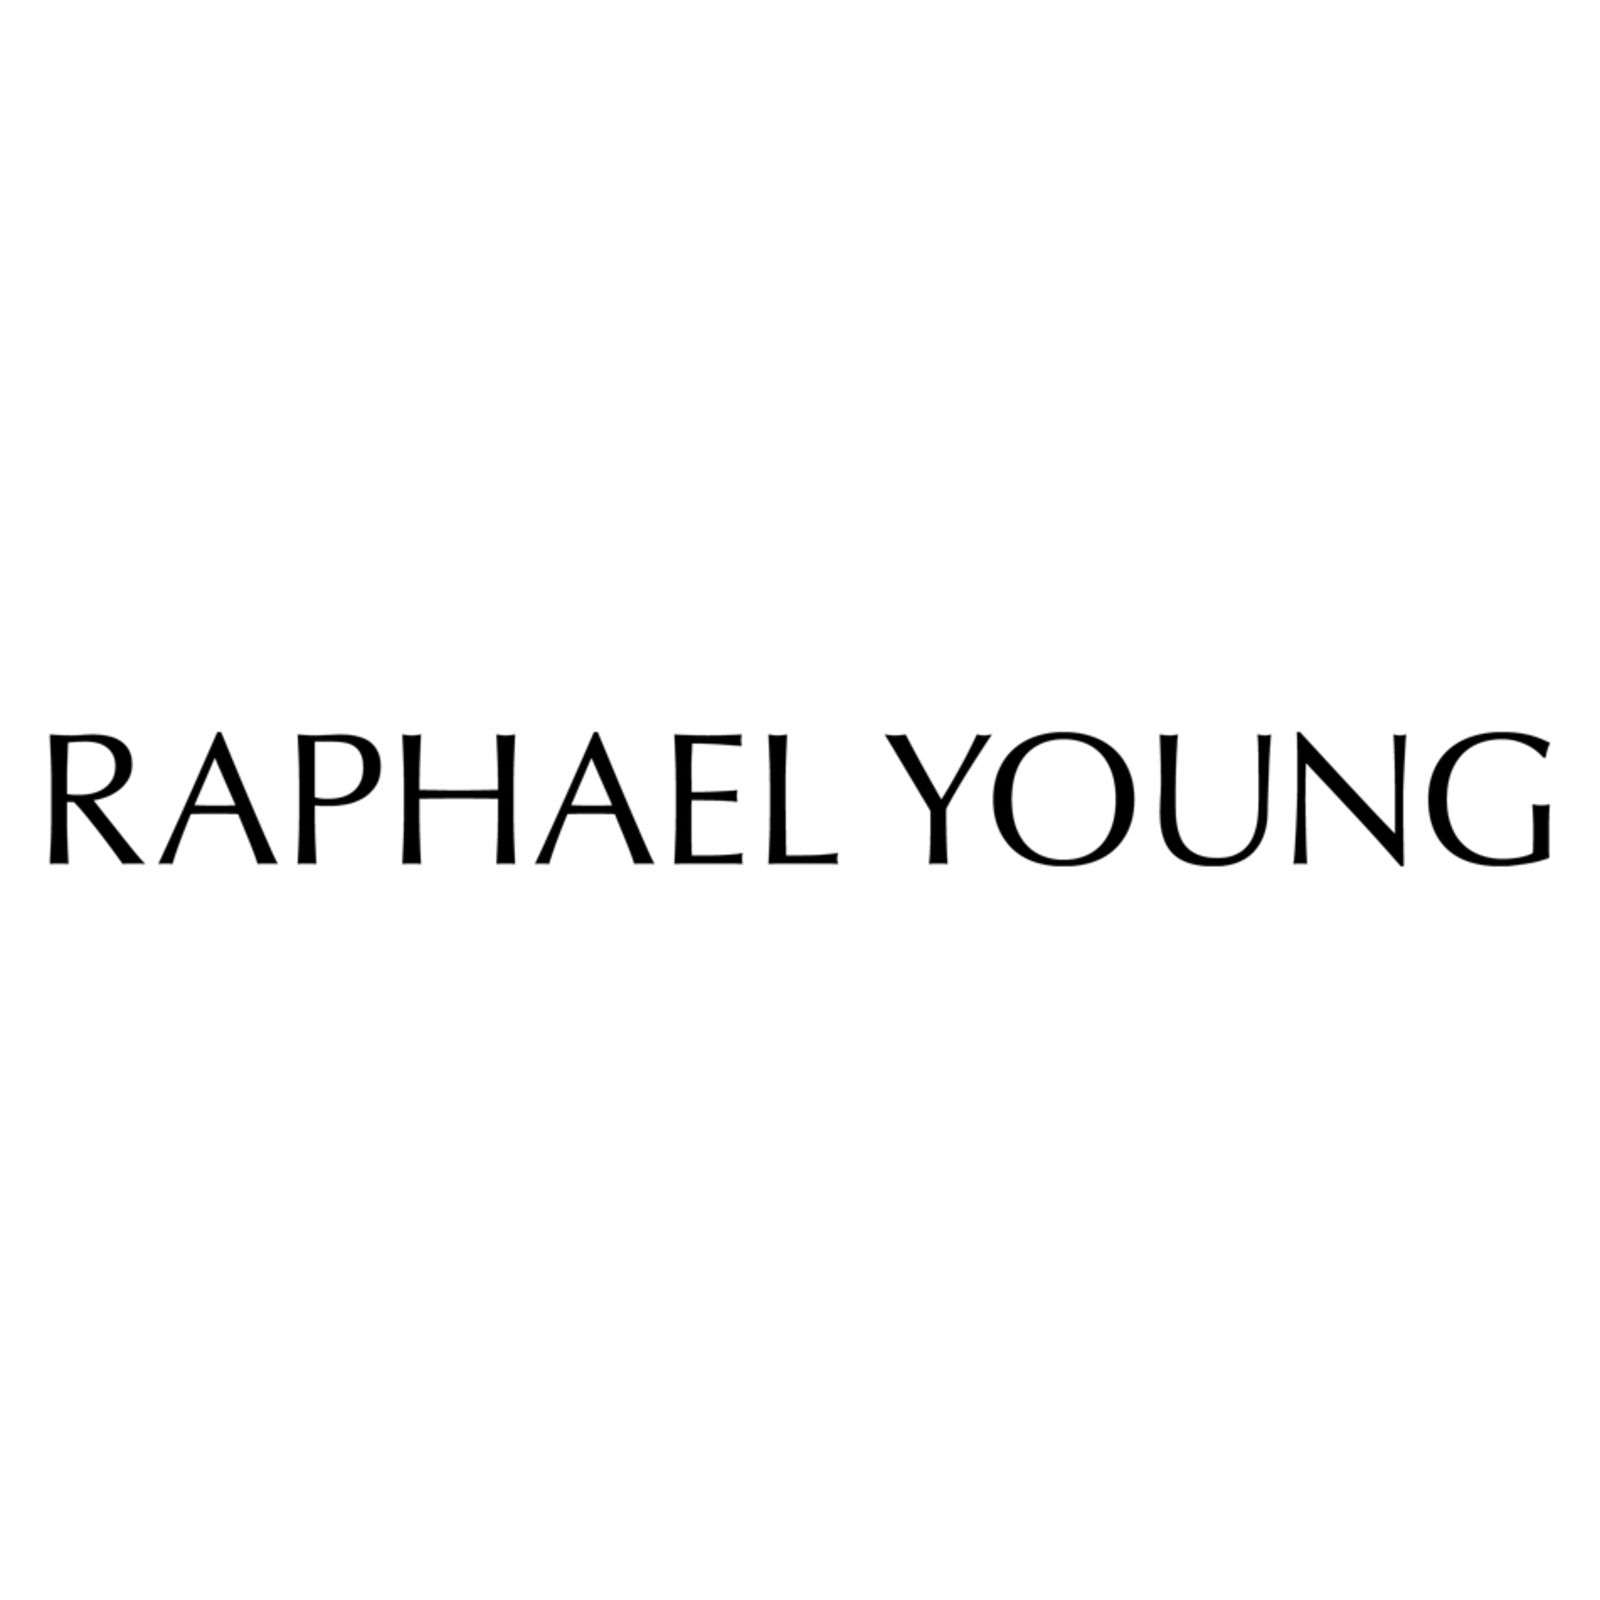 RAPHAEL YOUNG